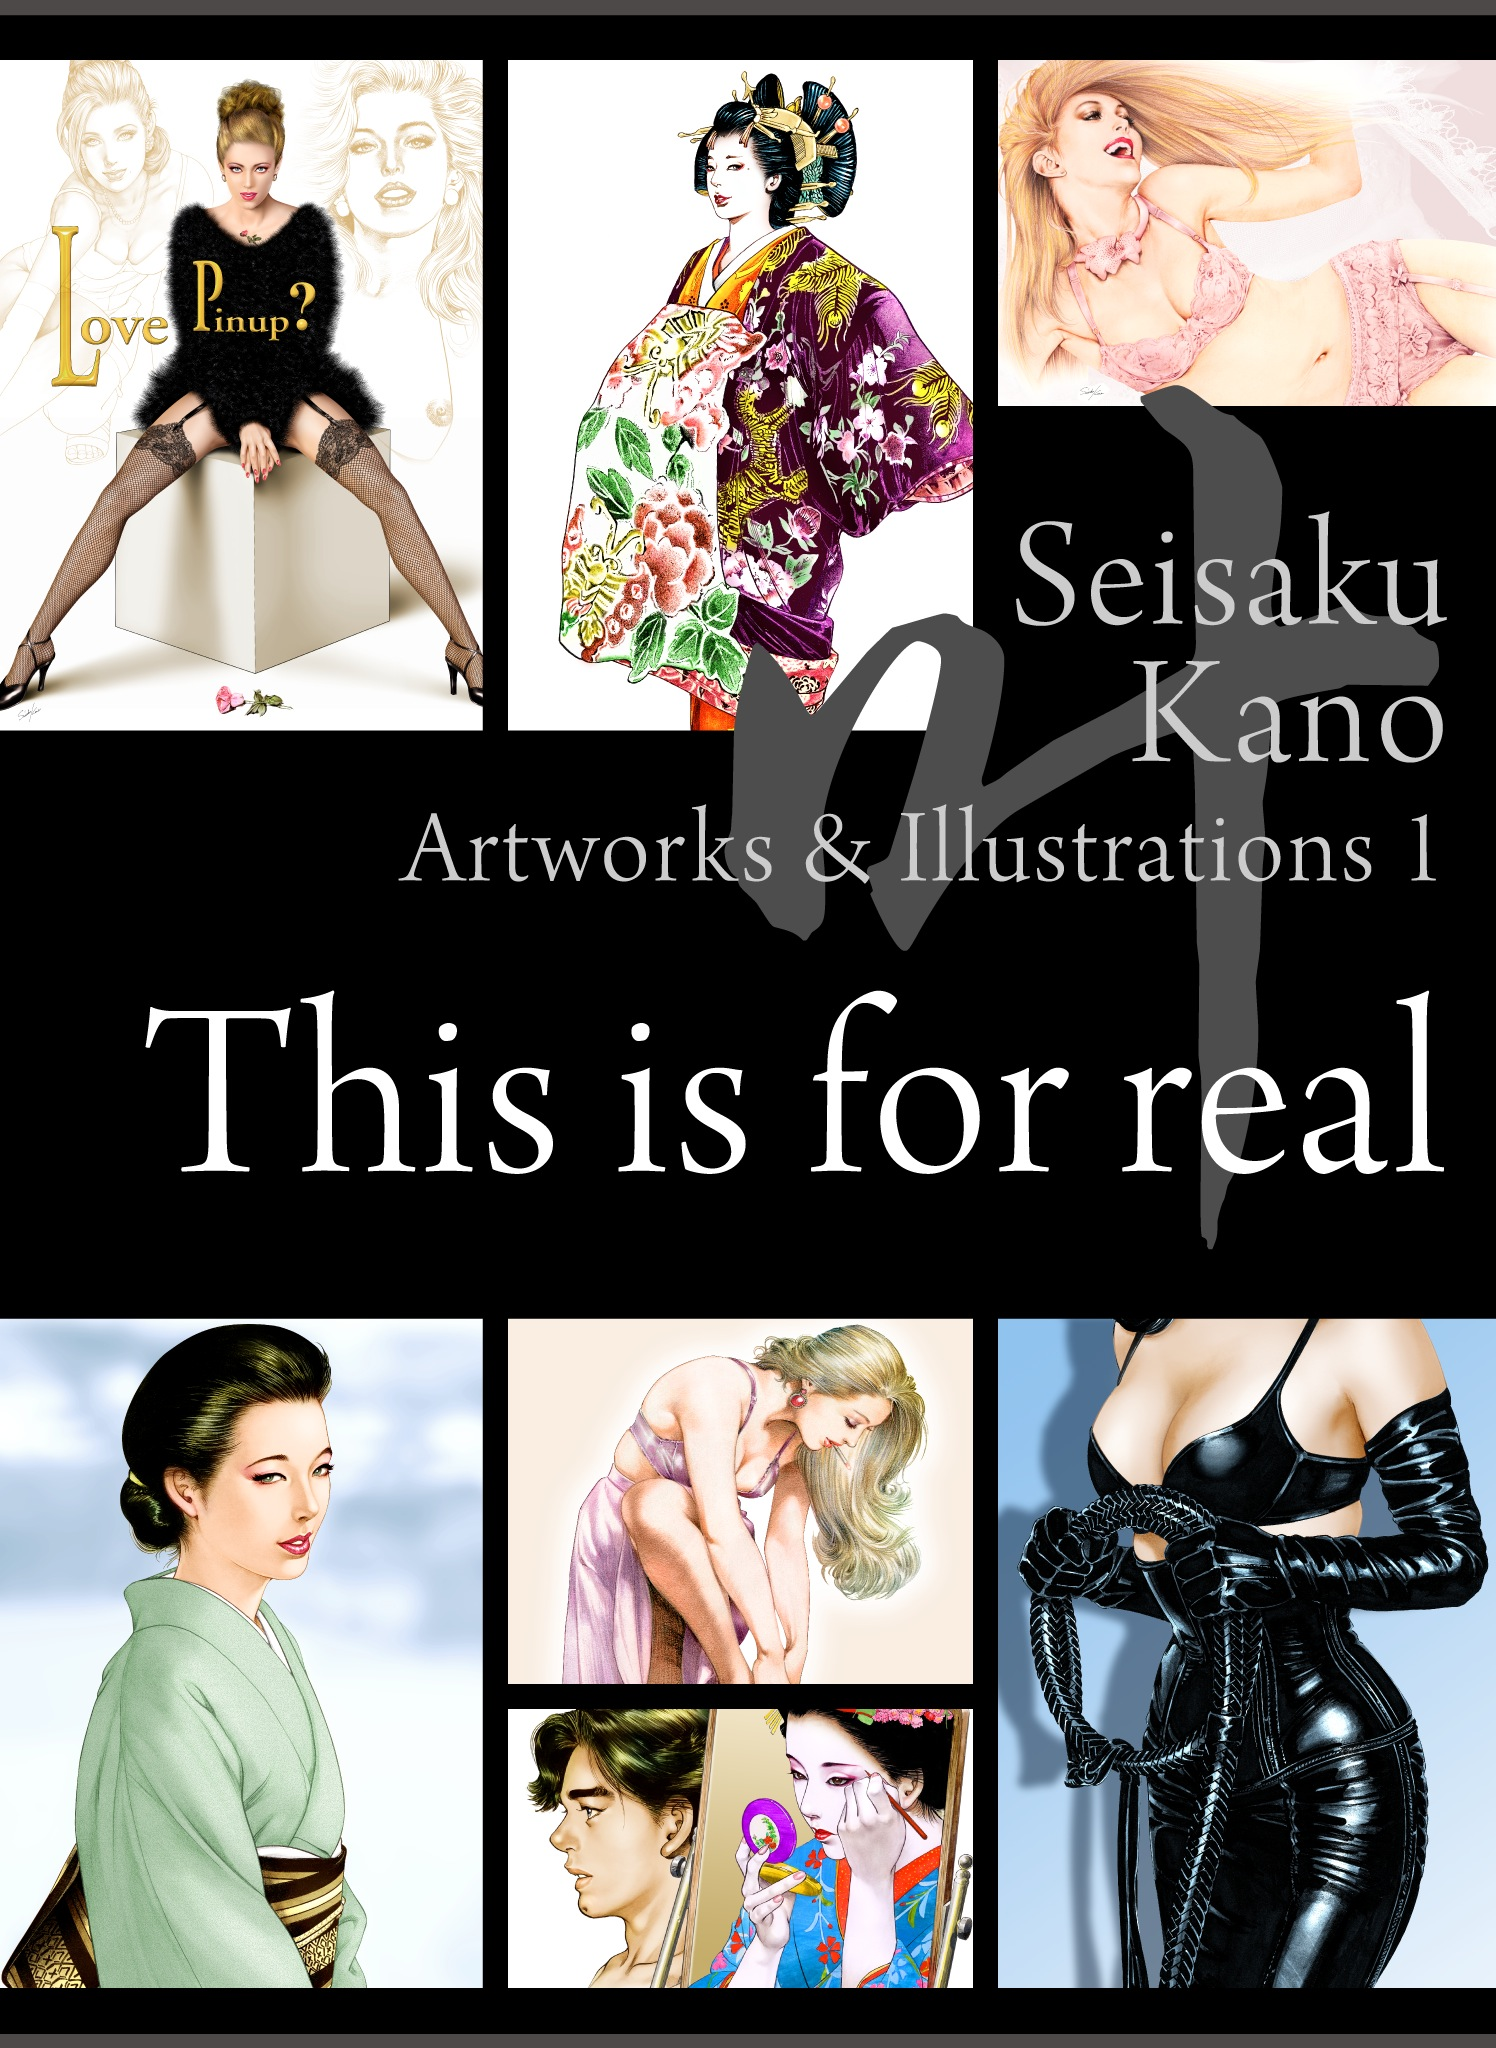 叶精作 作品集① Seisaku Kano Artworks & Illustrations 1 「 This is for real」